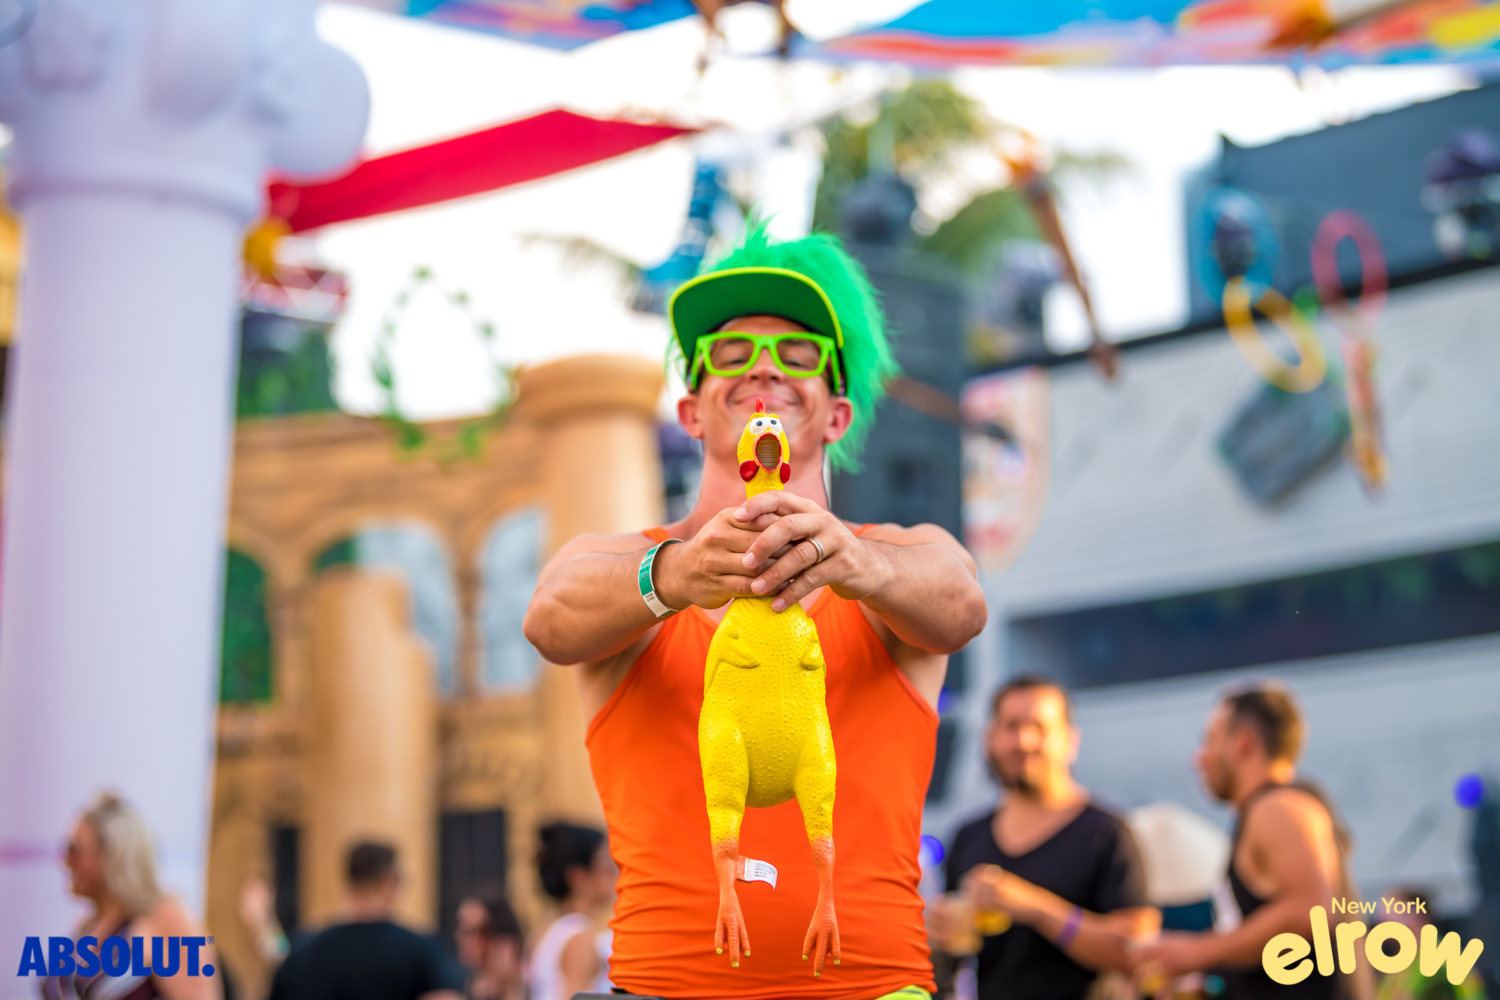 Making magic happen at Elrow Open Air – photos by aLIVE coverageELROW2018 0728 190711 8993 ALIVECOVERAGE